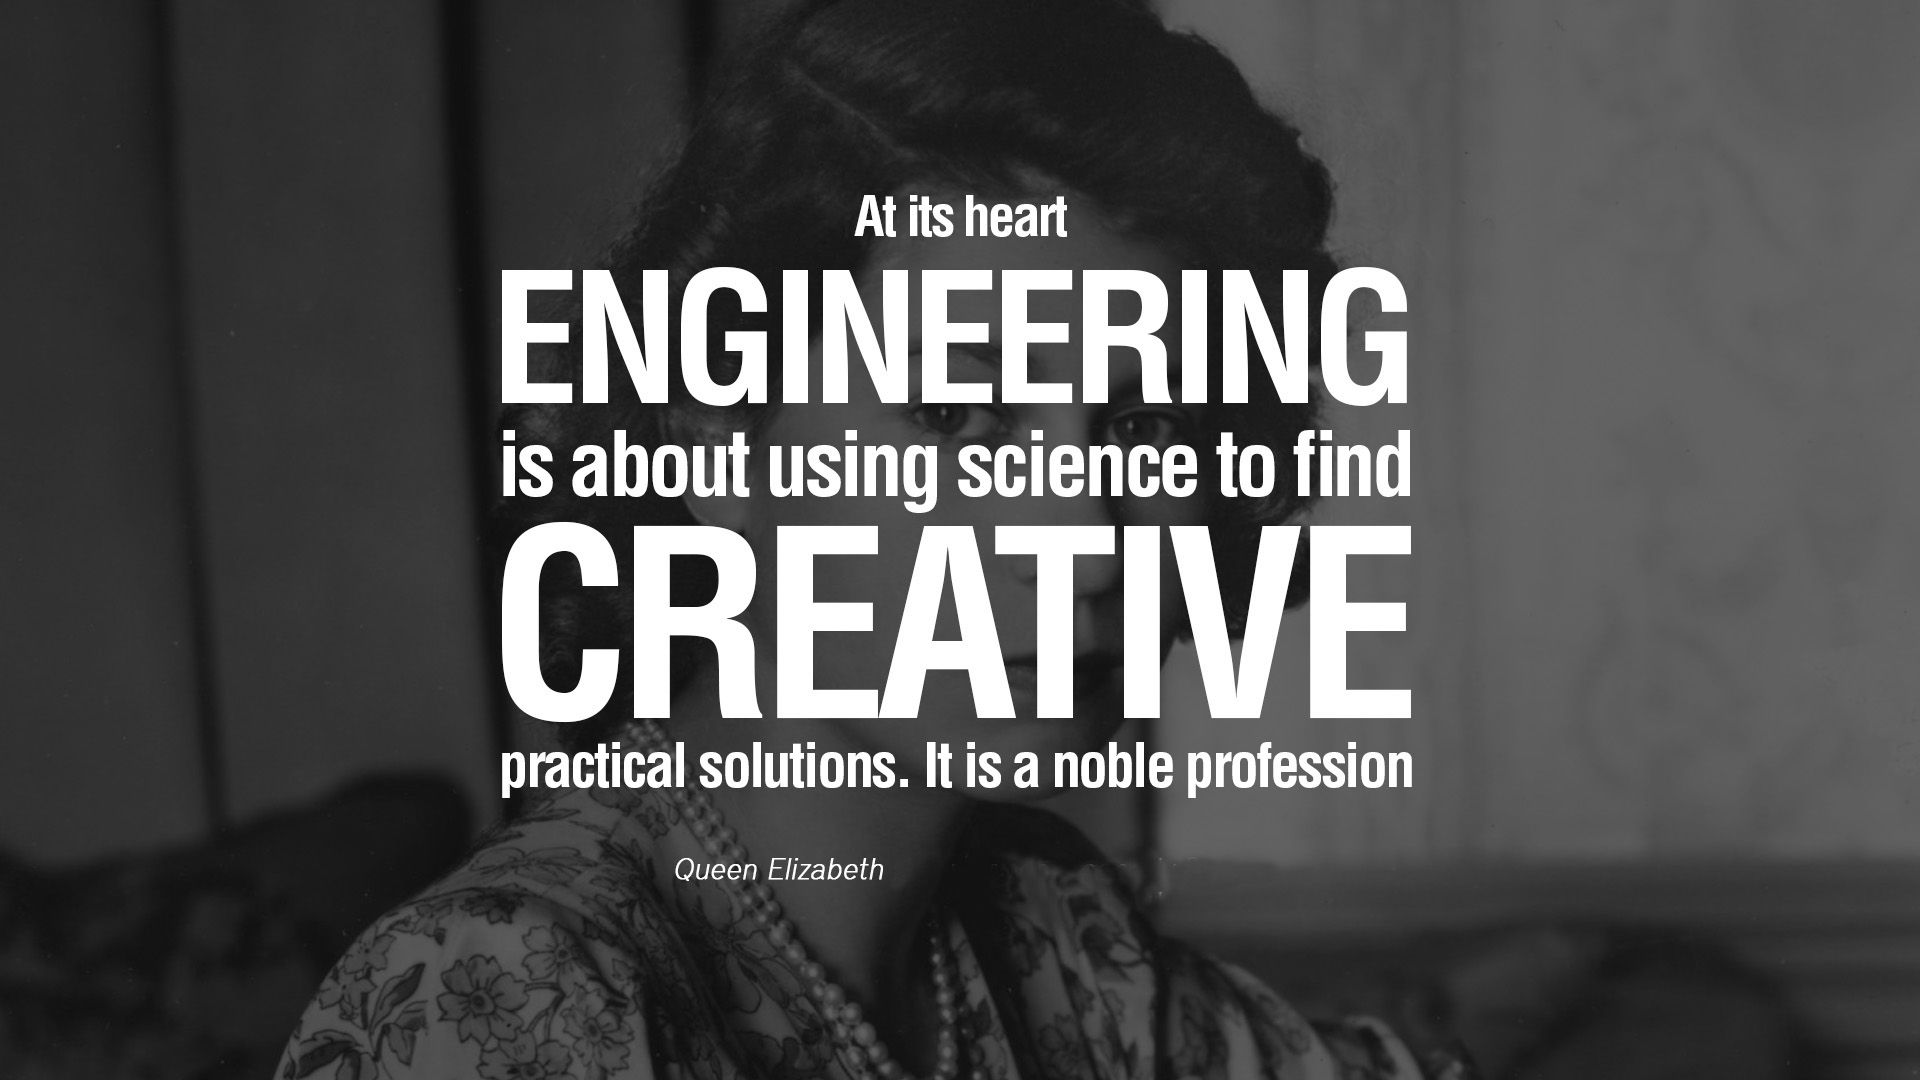 At its heart Engineering is about using science to find creative practical solutions. It is a noble profession. Queen Elizabeth.